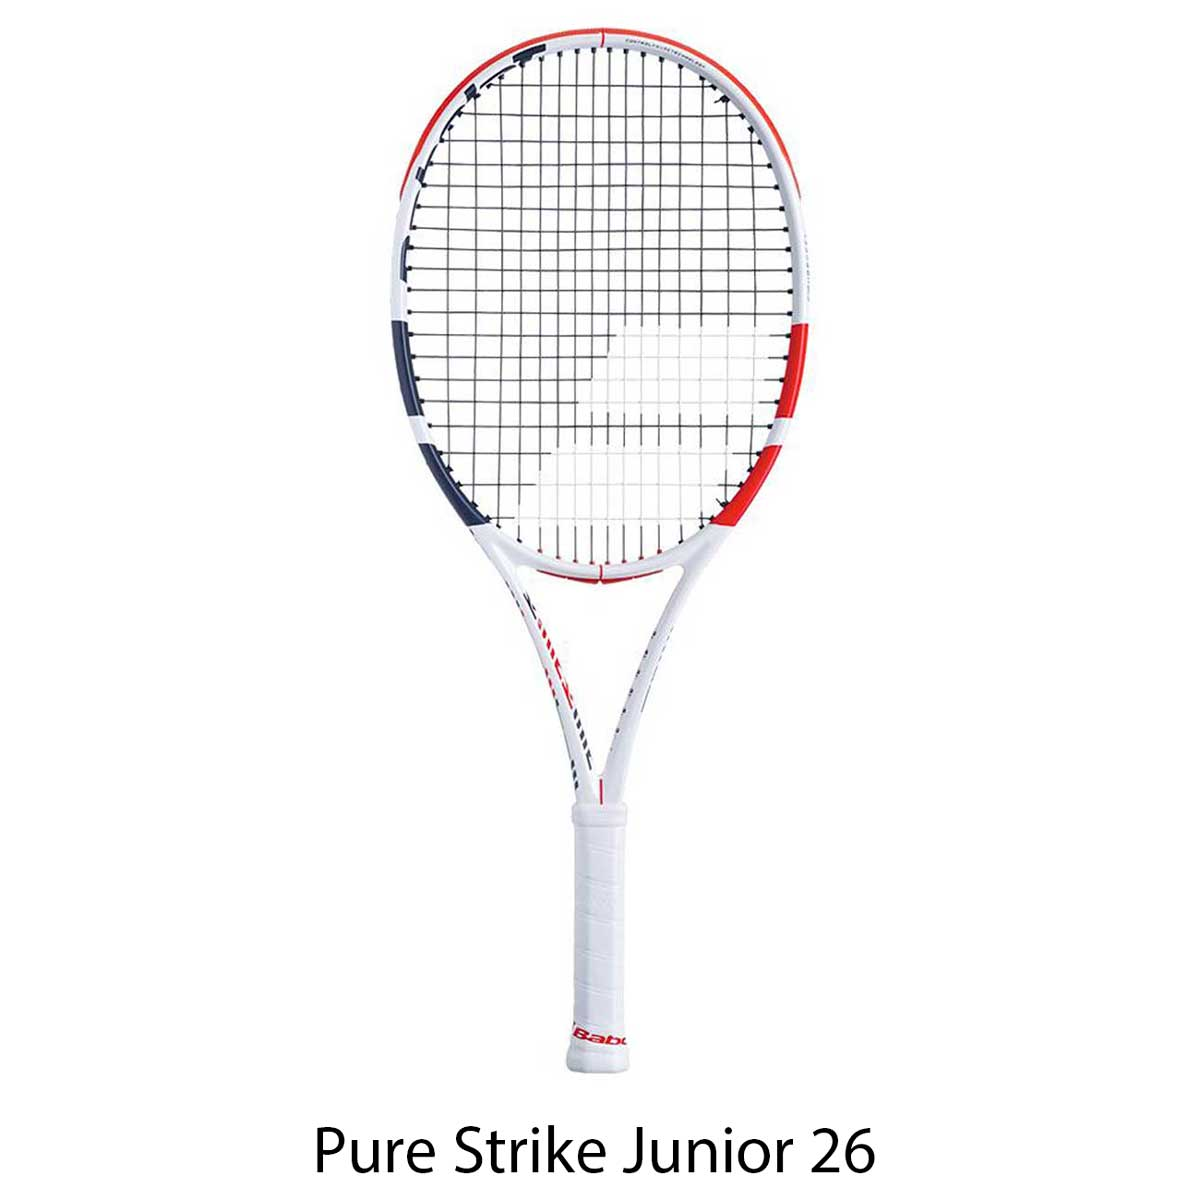 BABOLAT PURE STRIKE JUNIOR 26 TENNIS RACQUET